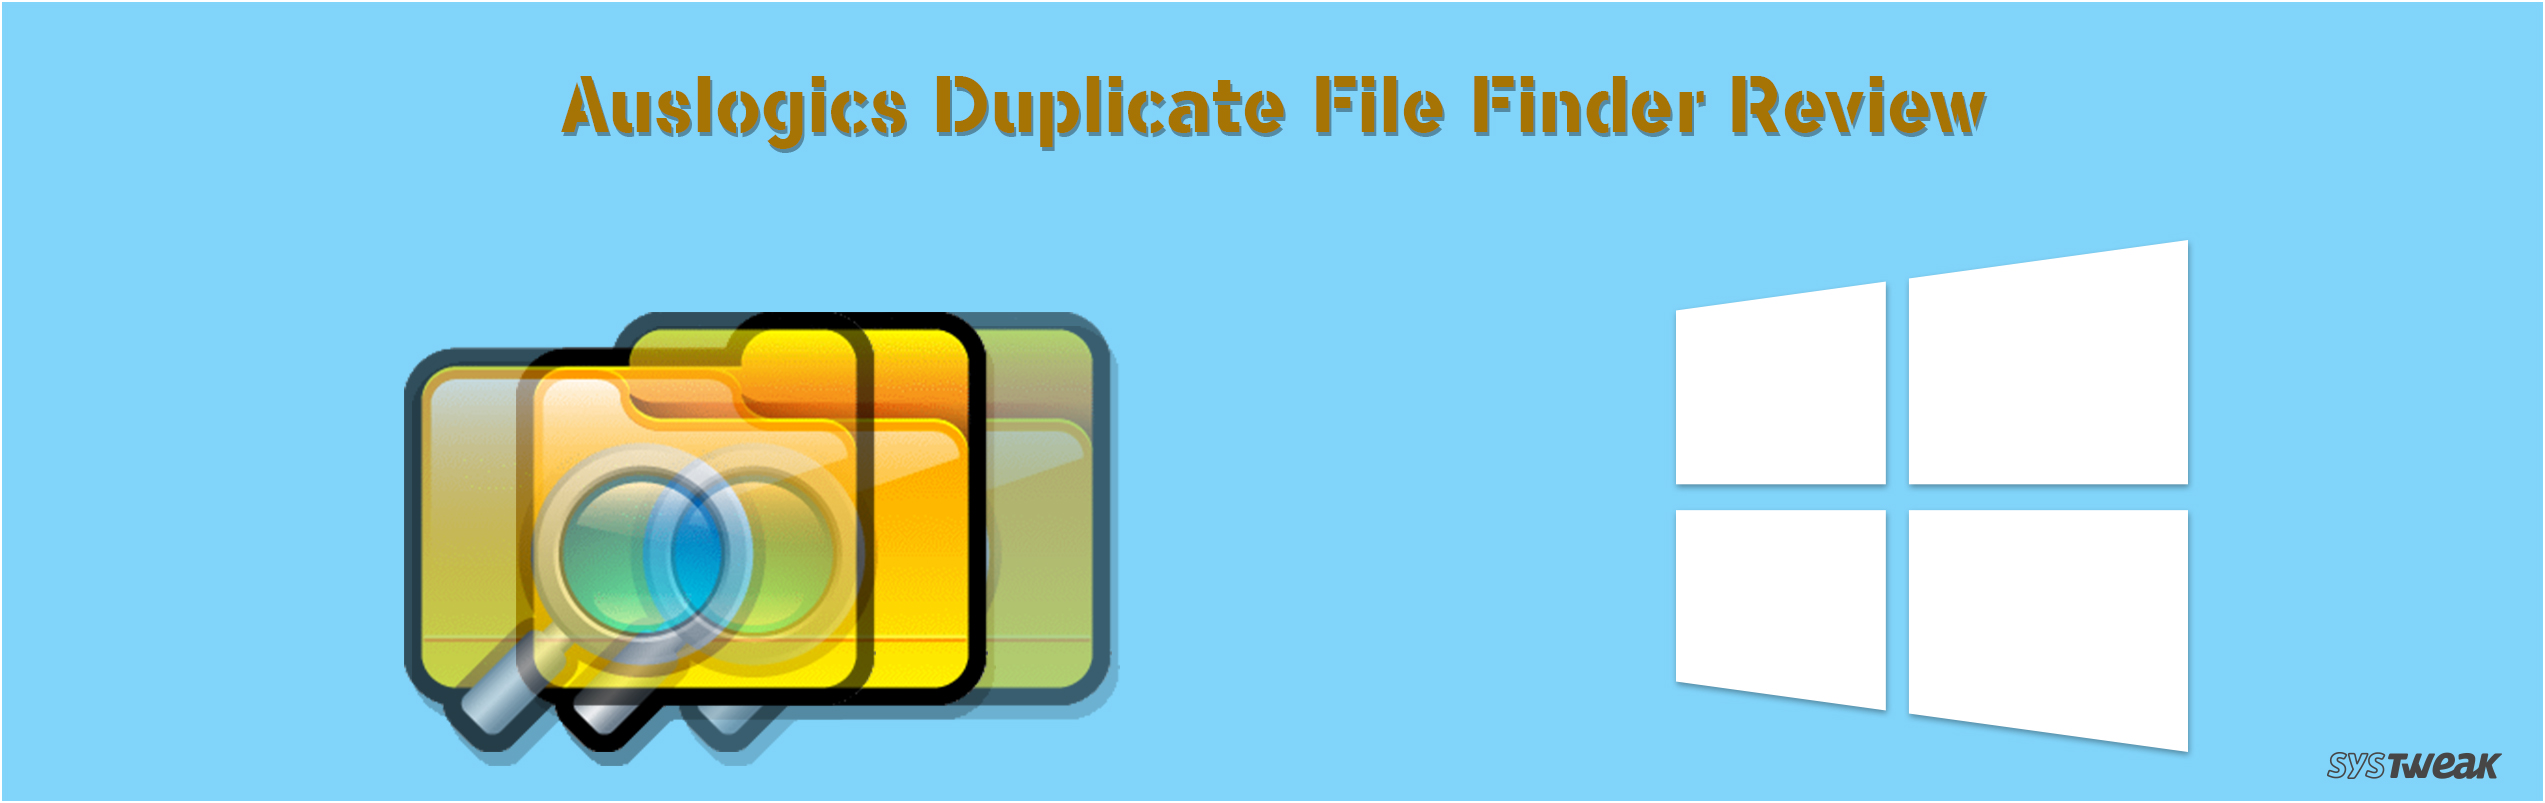 Auslogics Duplicate File Finder Review